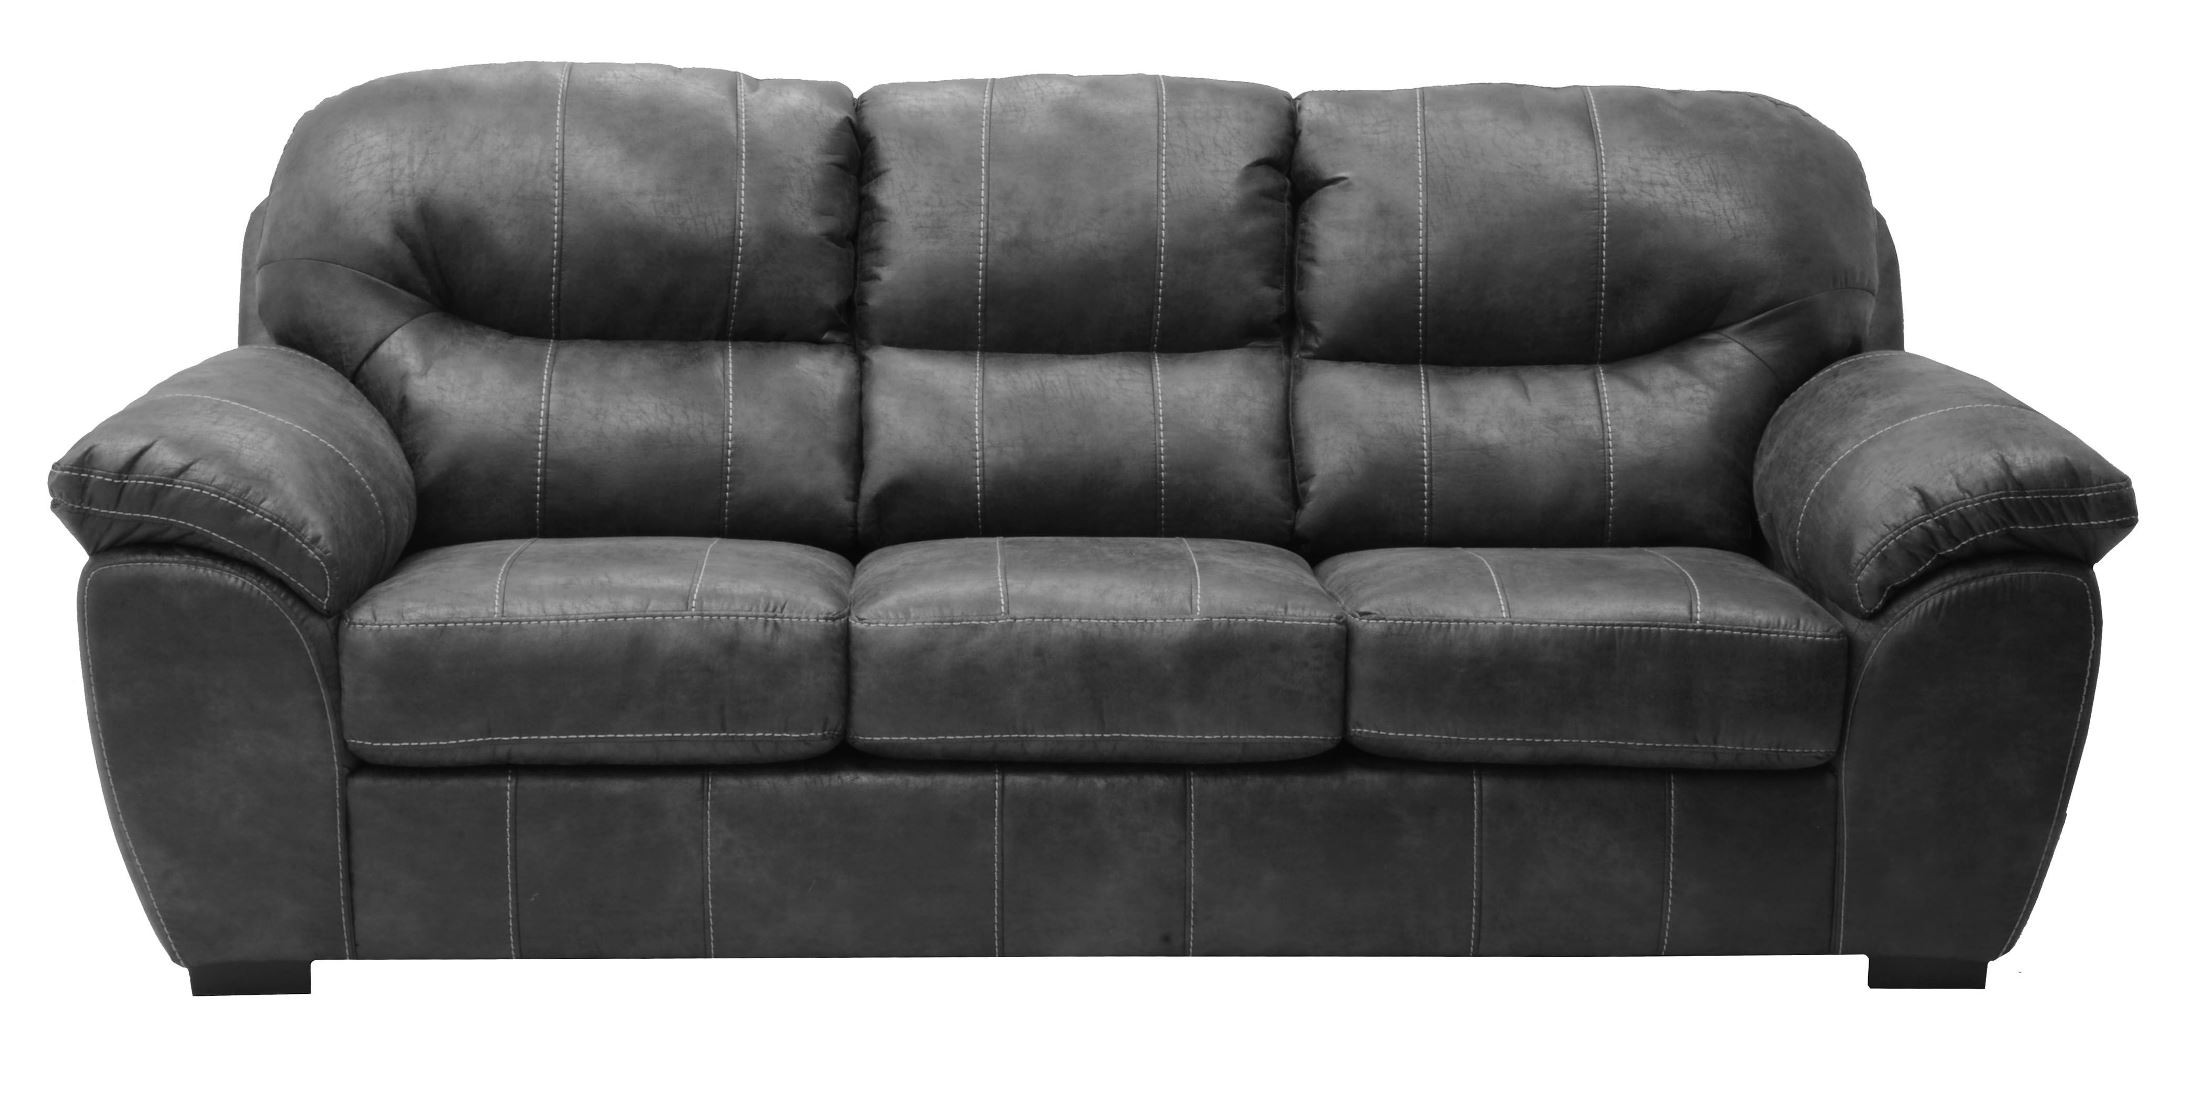 Grant Steel Sofa from Jackson